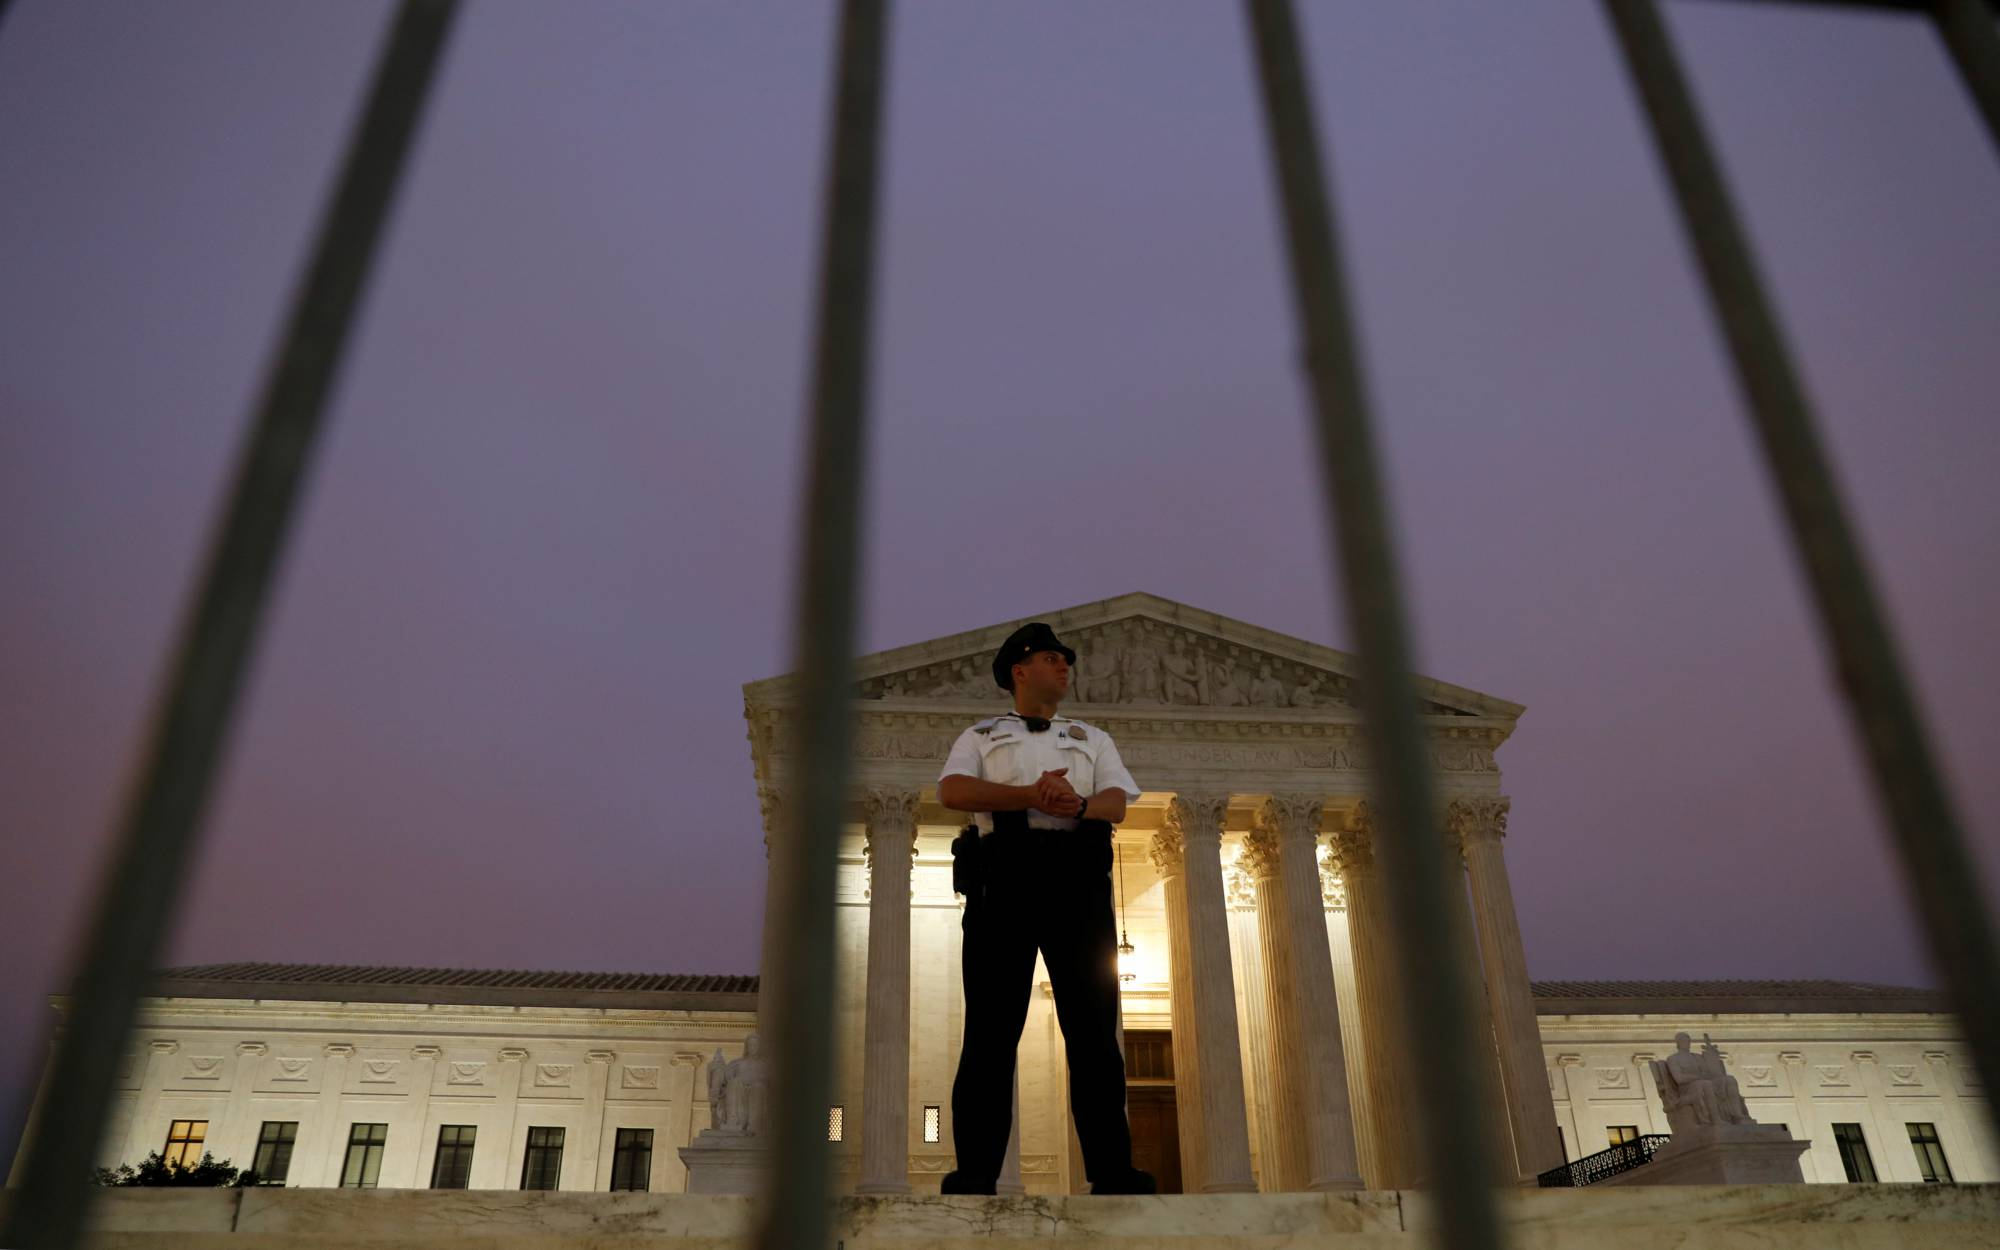 Lone U.S. Supreme Court officer guards the steps of the court after Justice Kavanaugh was sworn in as a justice inside in Washington